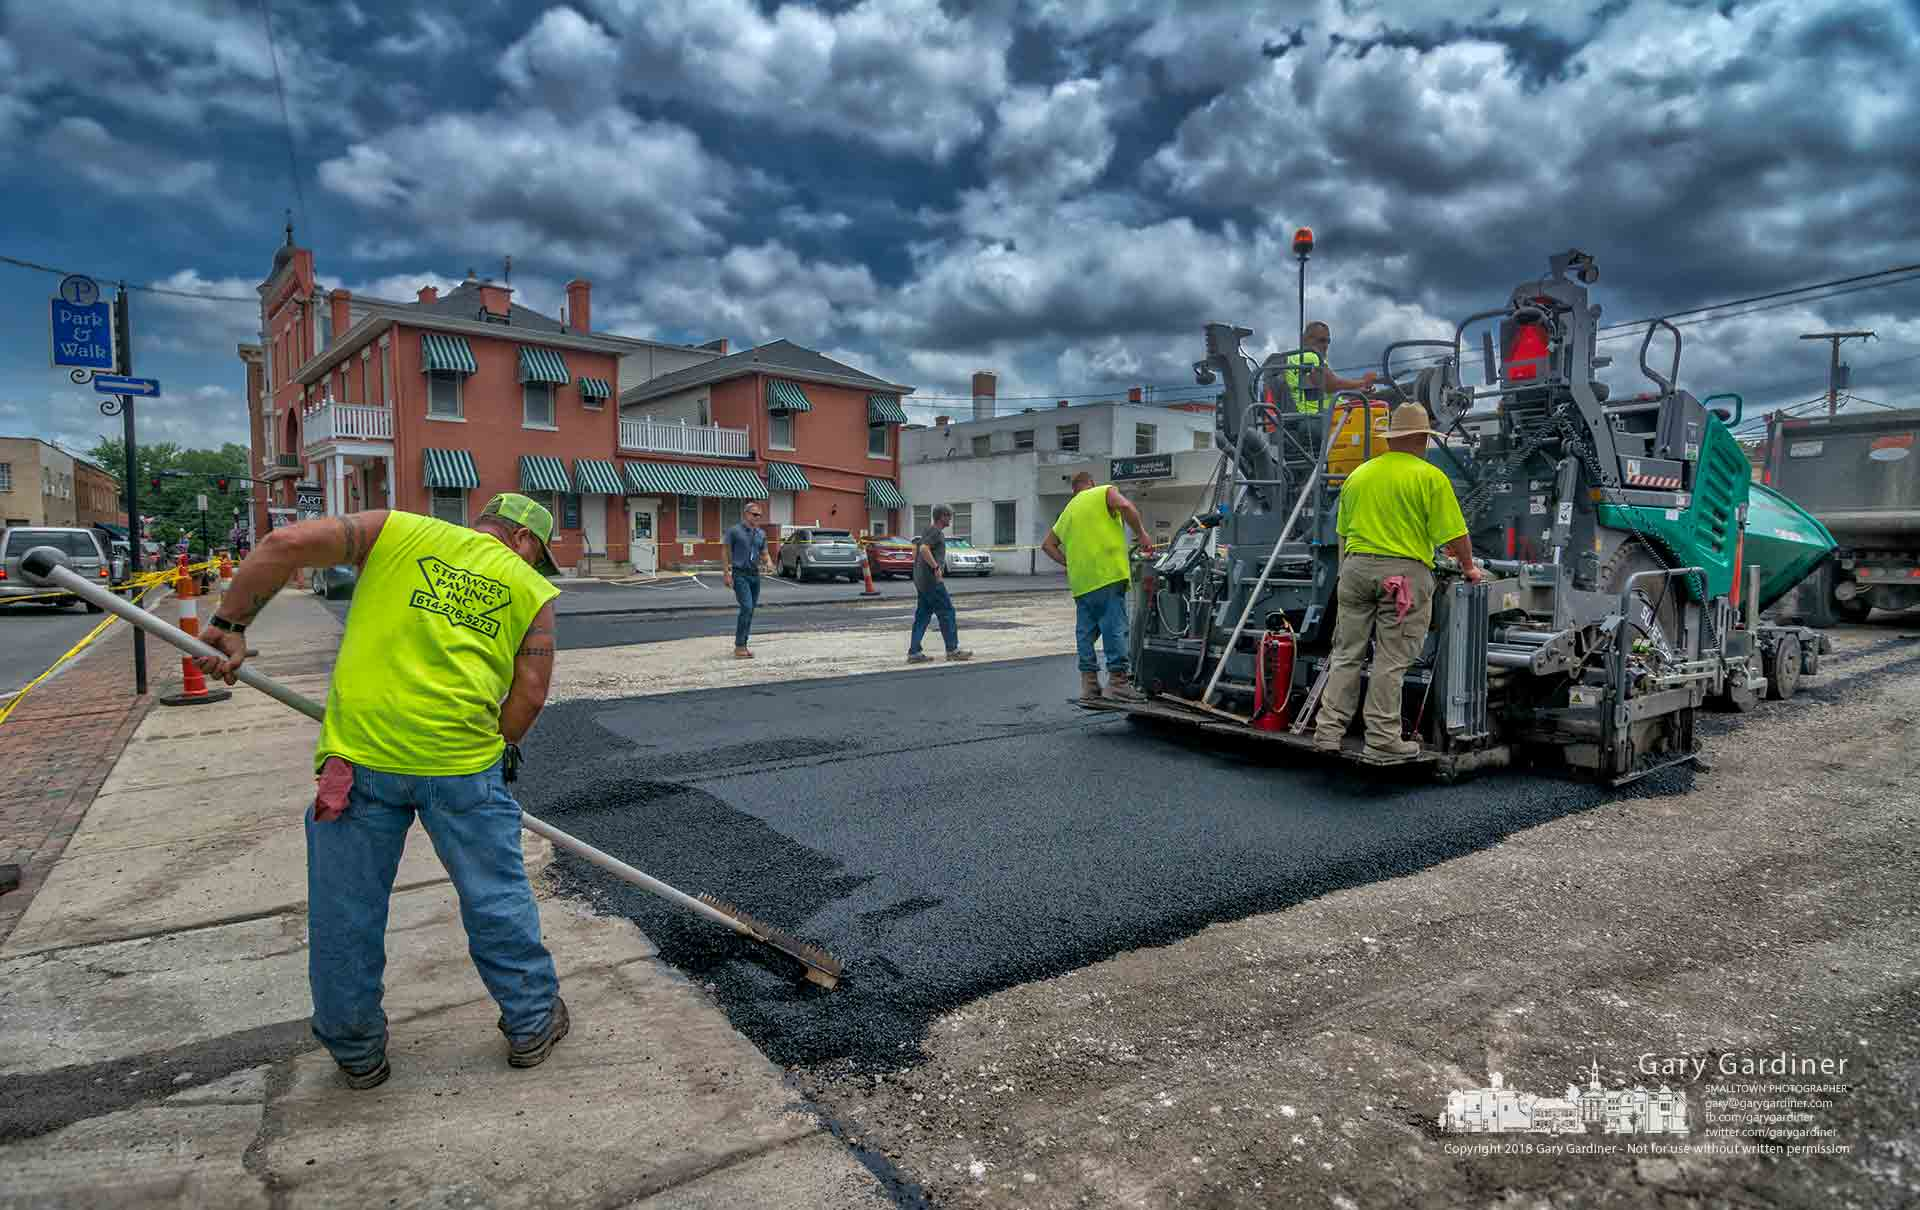 A paving crew begins laying the first layer of asphalt on the parking lot that spans from West College to West Main behind the State Street businesses. My Final Photo for June 26, 2018.